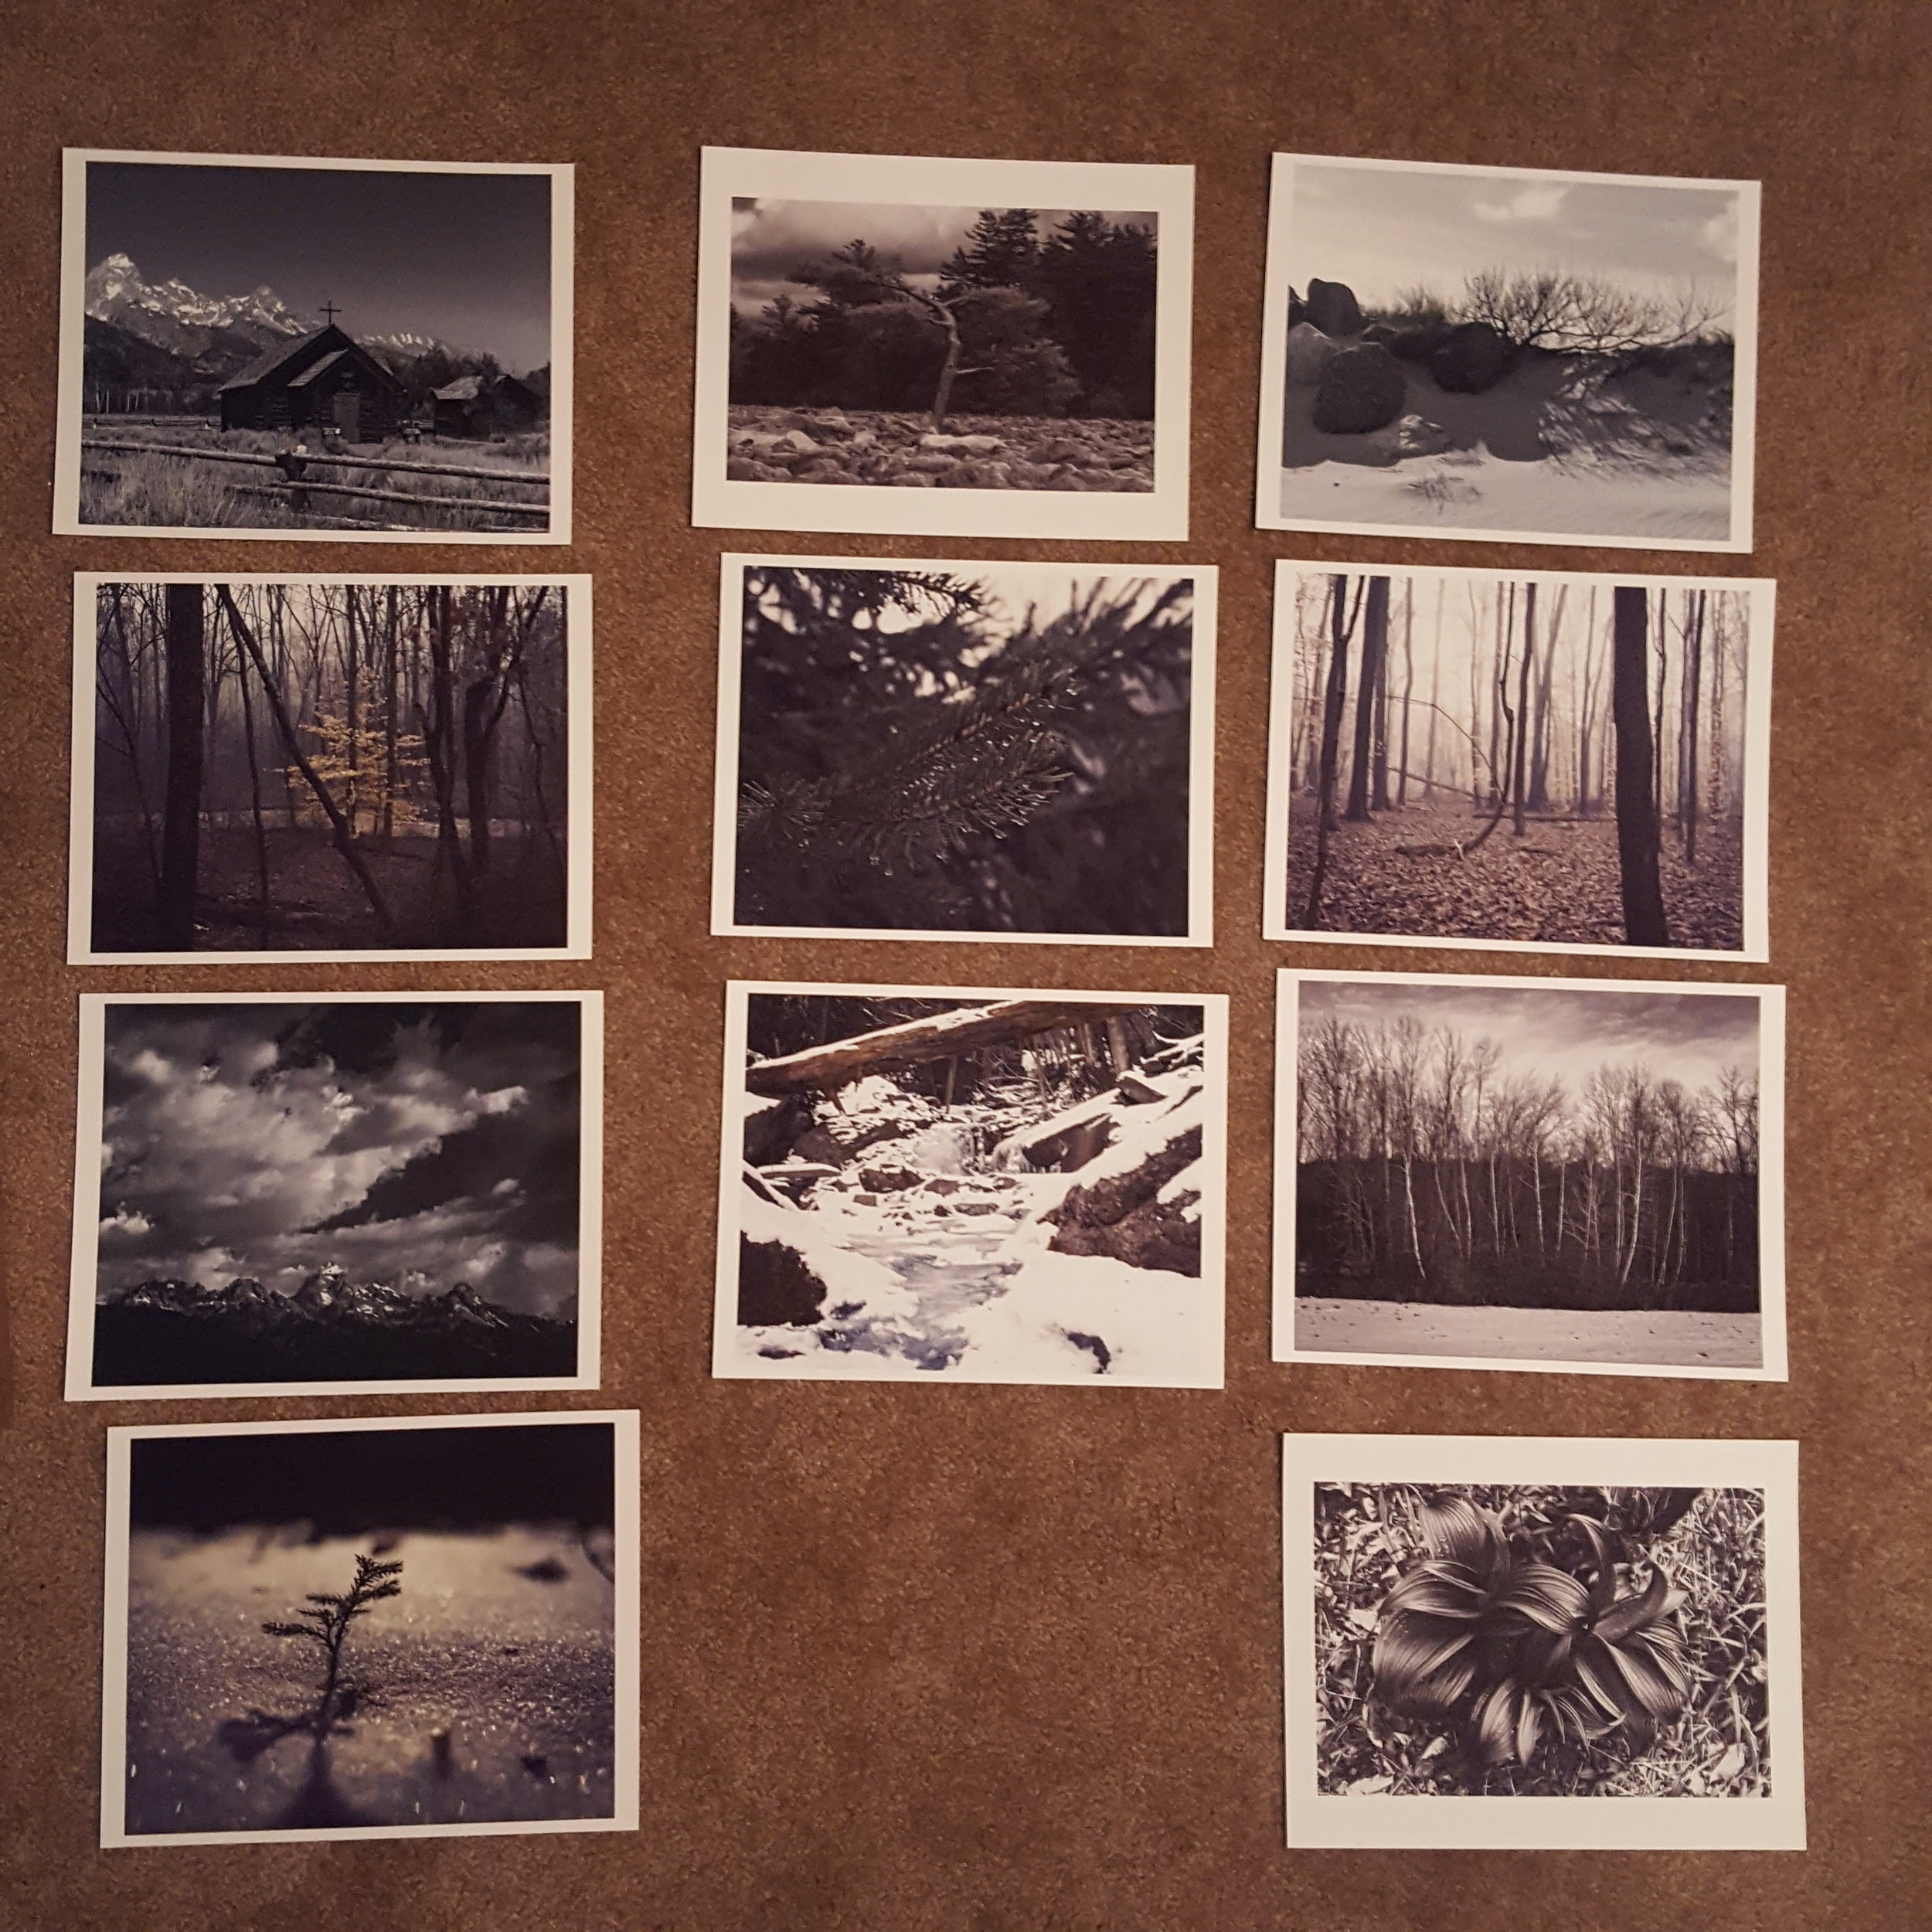 a sneak preview of some prints that may come to the shop in time